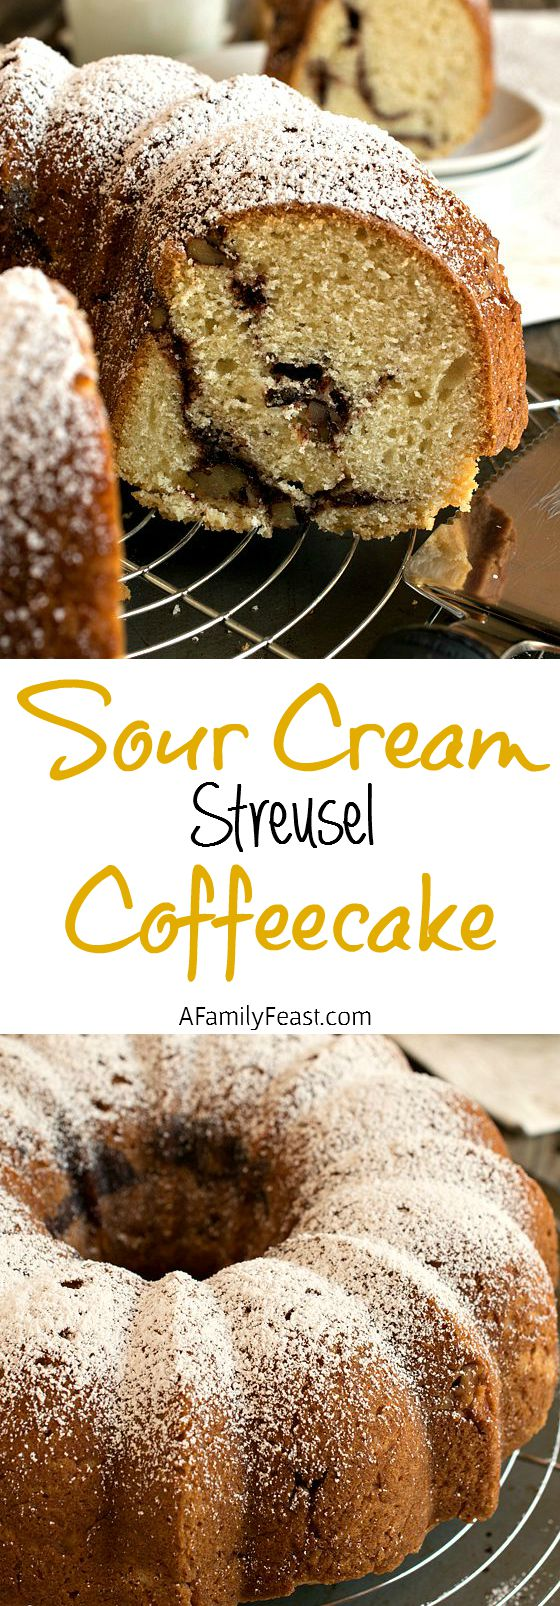 Sour Cream Streusel Coffeecake - A classic coffeecake recipe with a sugar, cinnamon and walnut streusel baked inside!